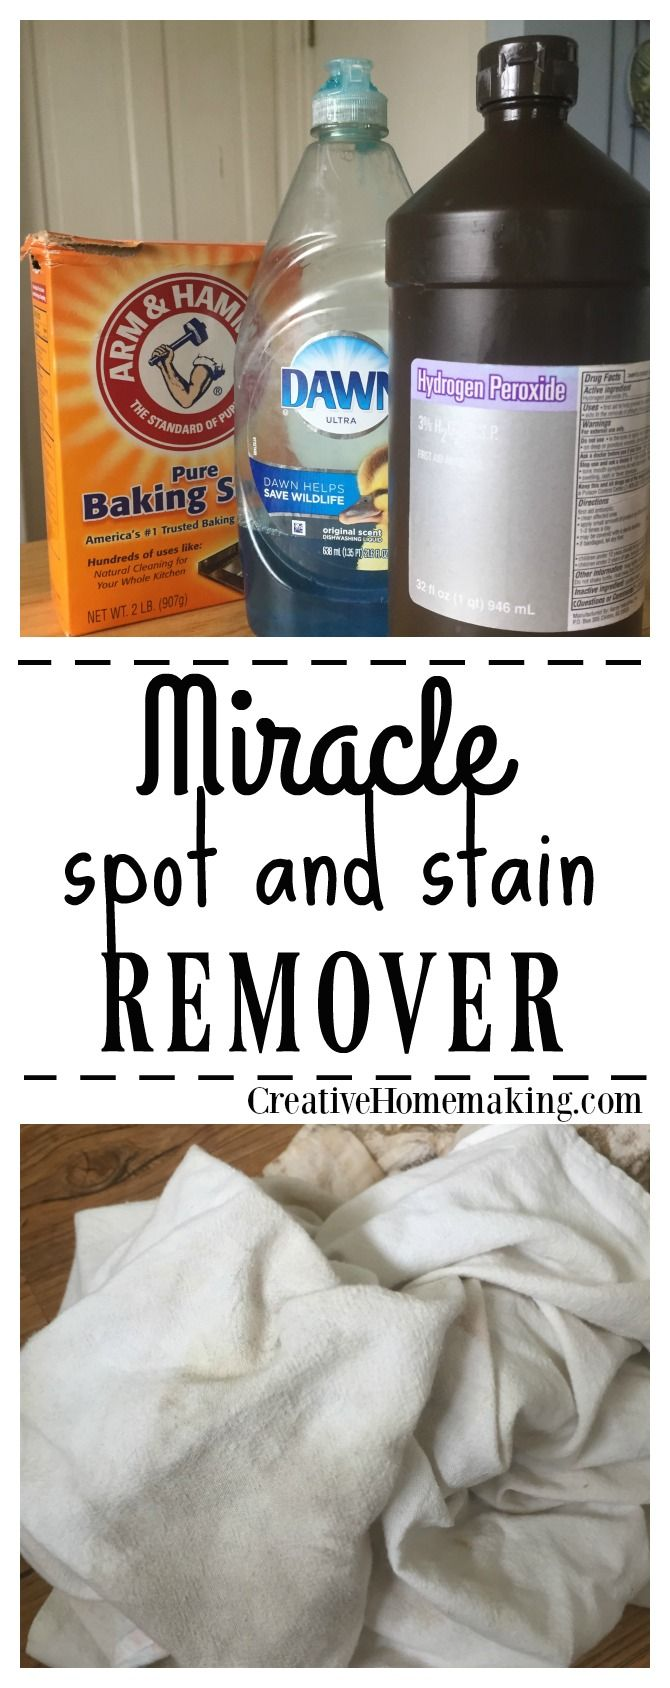 Throughout the years I have tried many methods of removing stains from clothing. This homemade spot remover really does the job, and it is very inexpensive and easy to make.